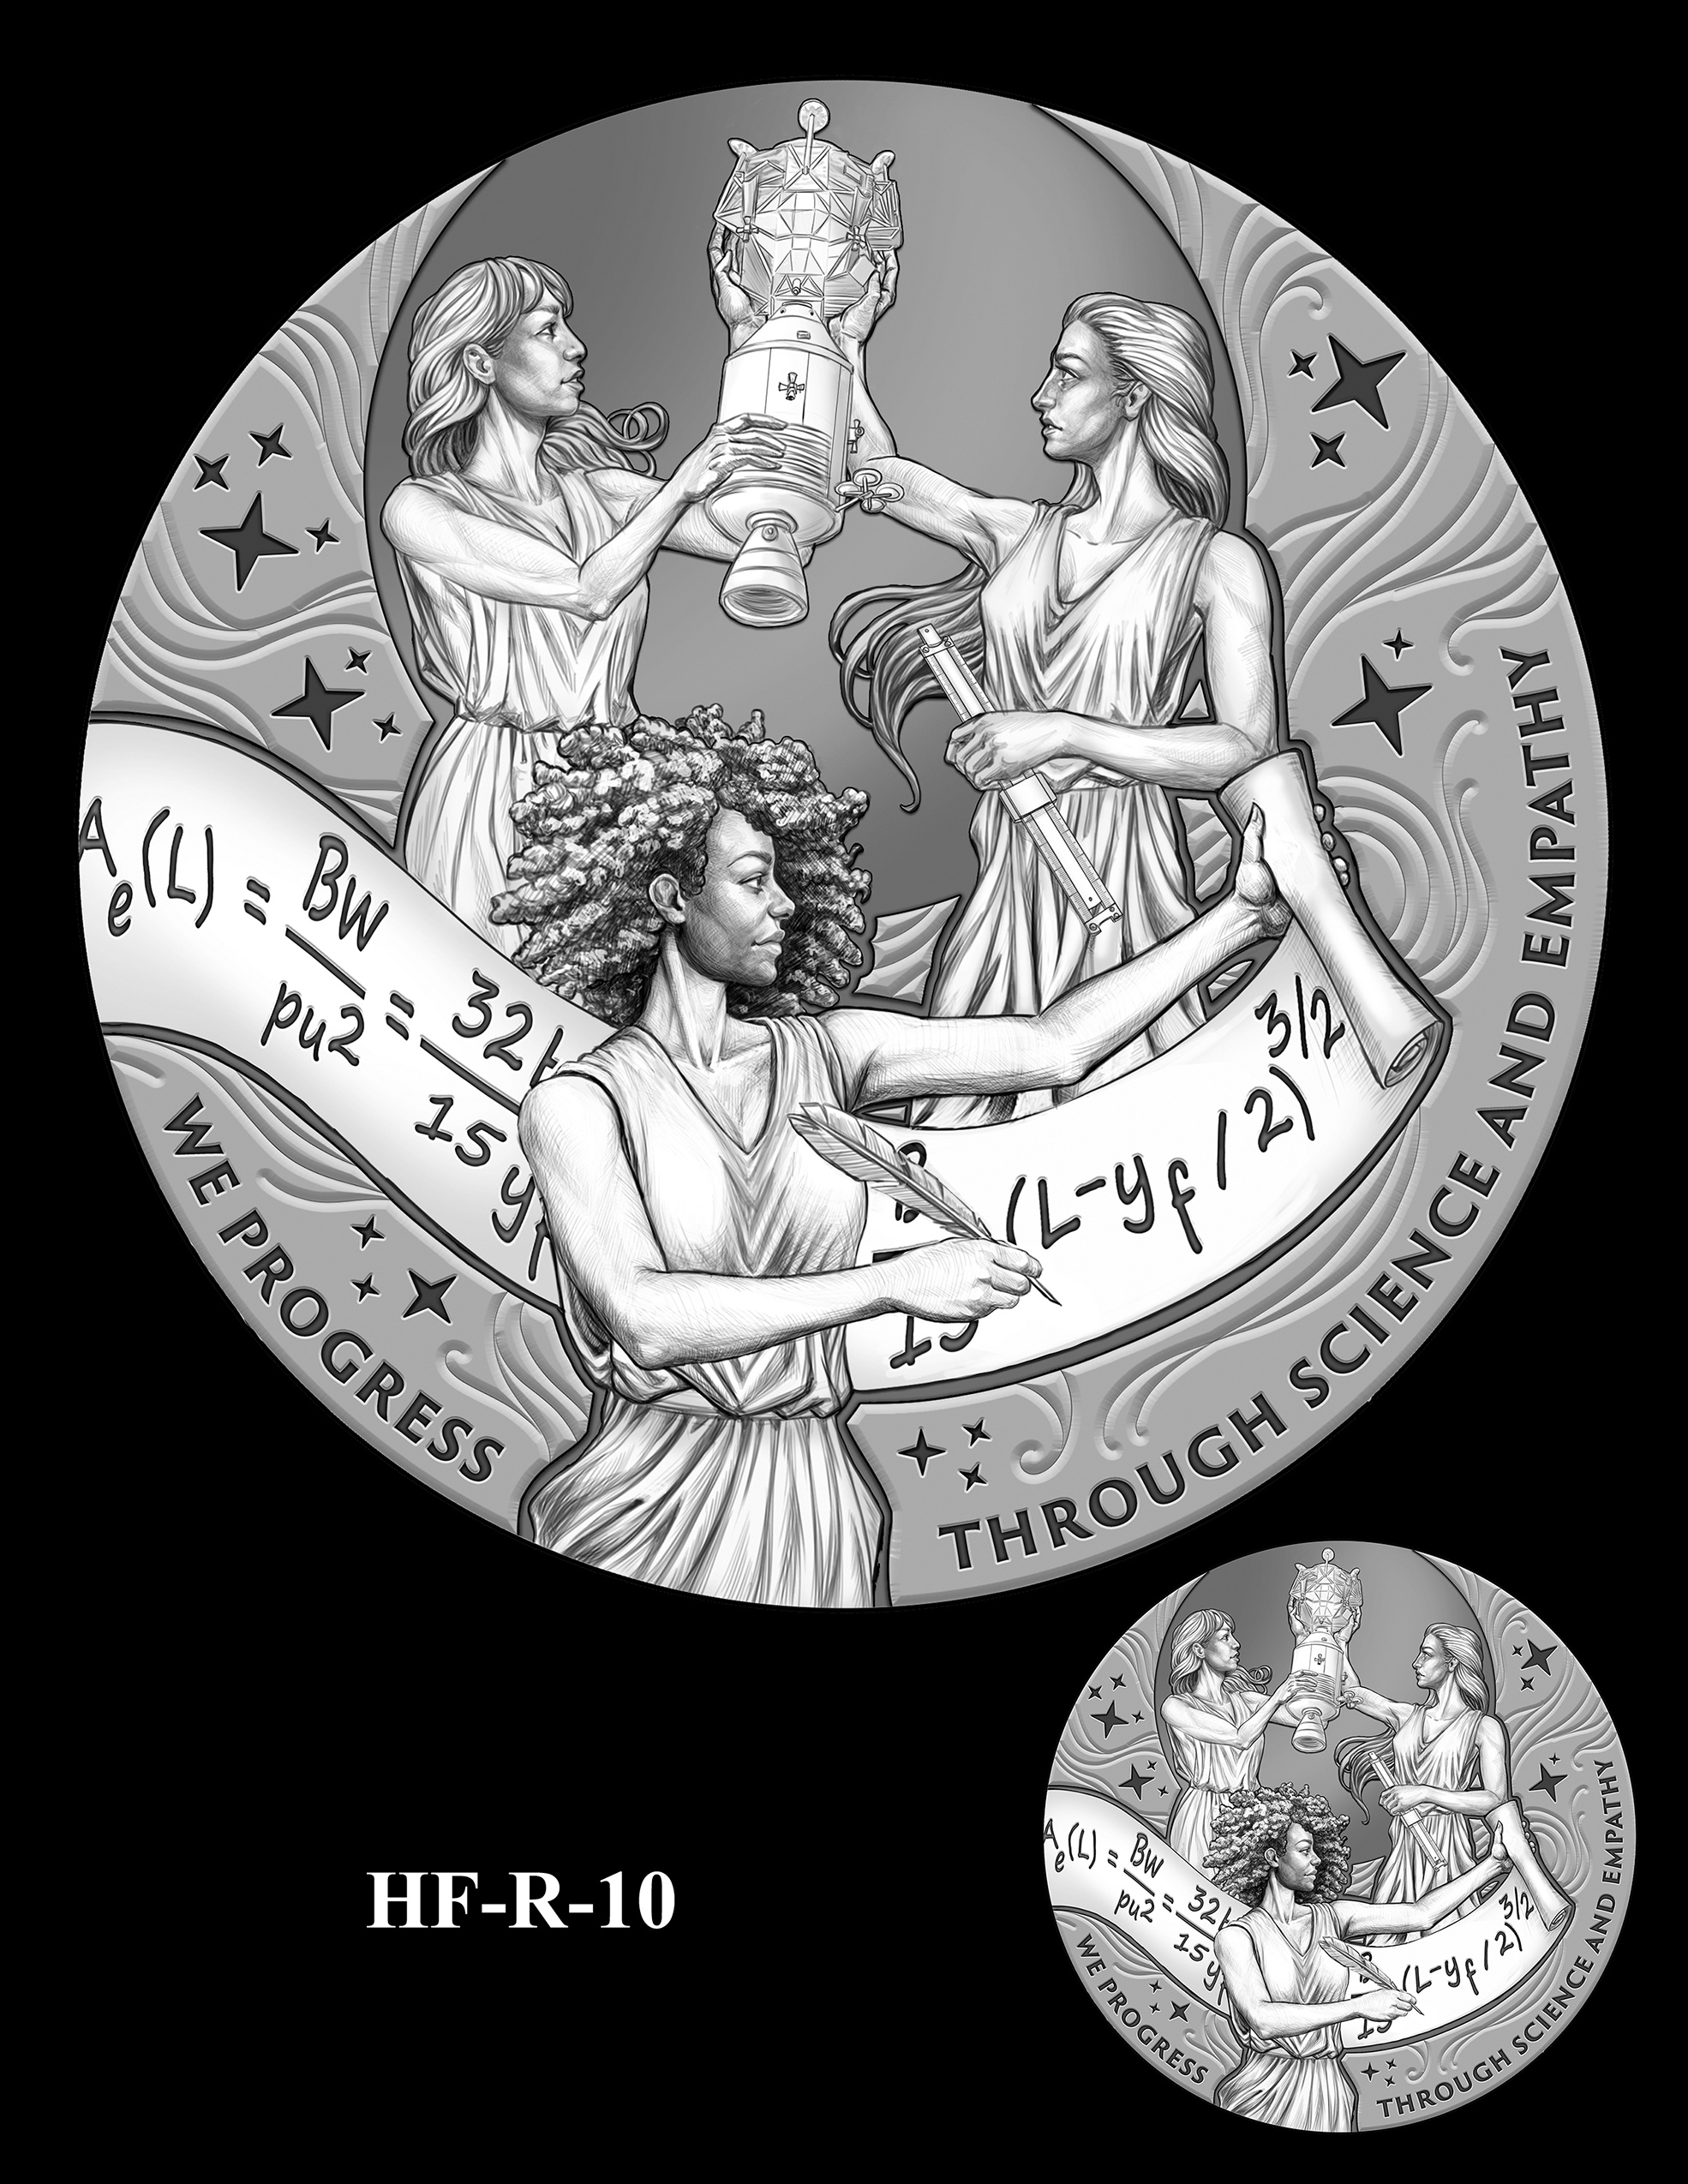 HF-R-10 -- Hidden Figures Group Congressional Gold Medal